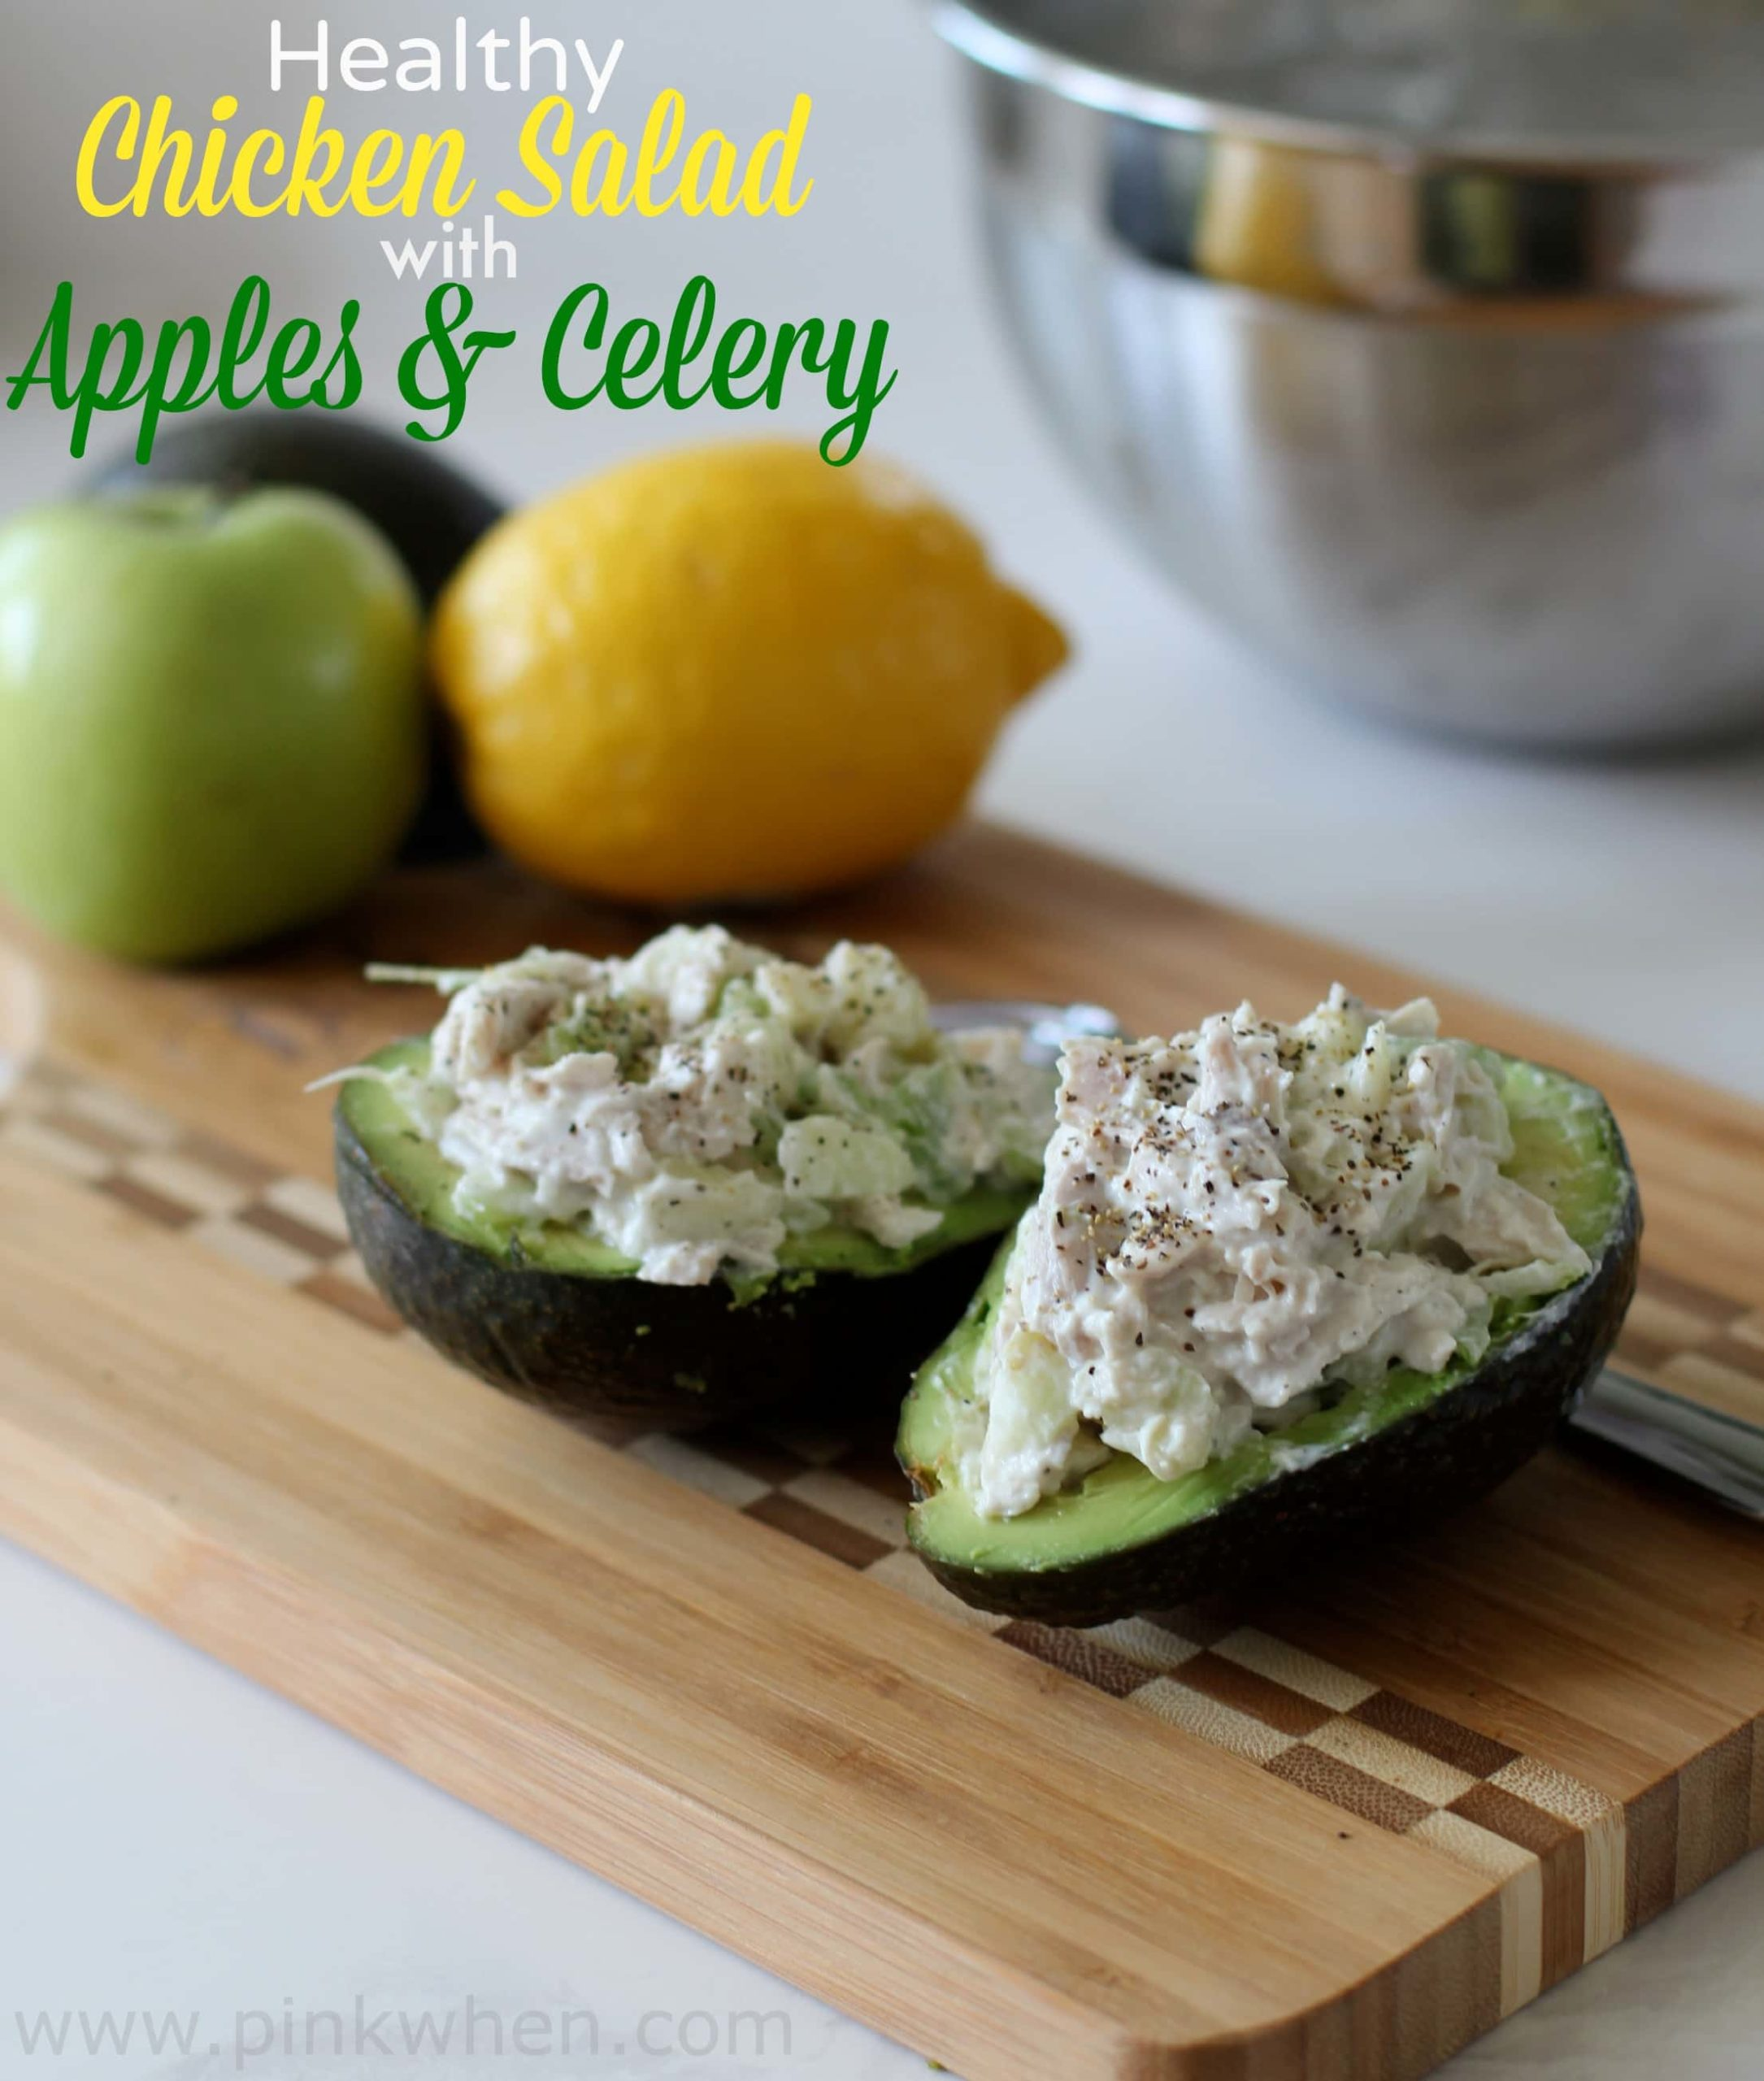 Chicken salad with apples is one of my favorite ways to sweeten and give a standard homemade chicken salad even more of a mouthwatering punch! If you love chicken salad, you will love this healthy chicken salad with apple recipe. #chickensalad #healthychickensalad #chickensaladwithapples